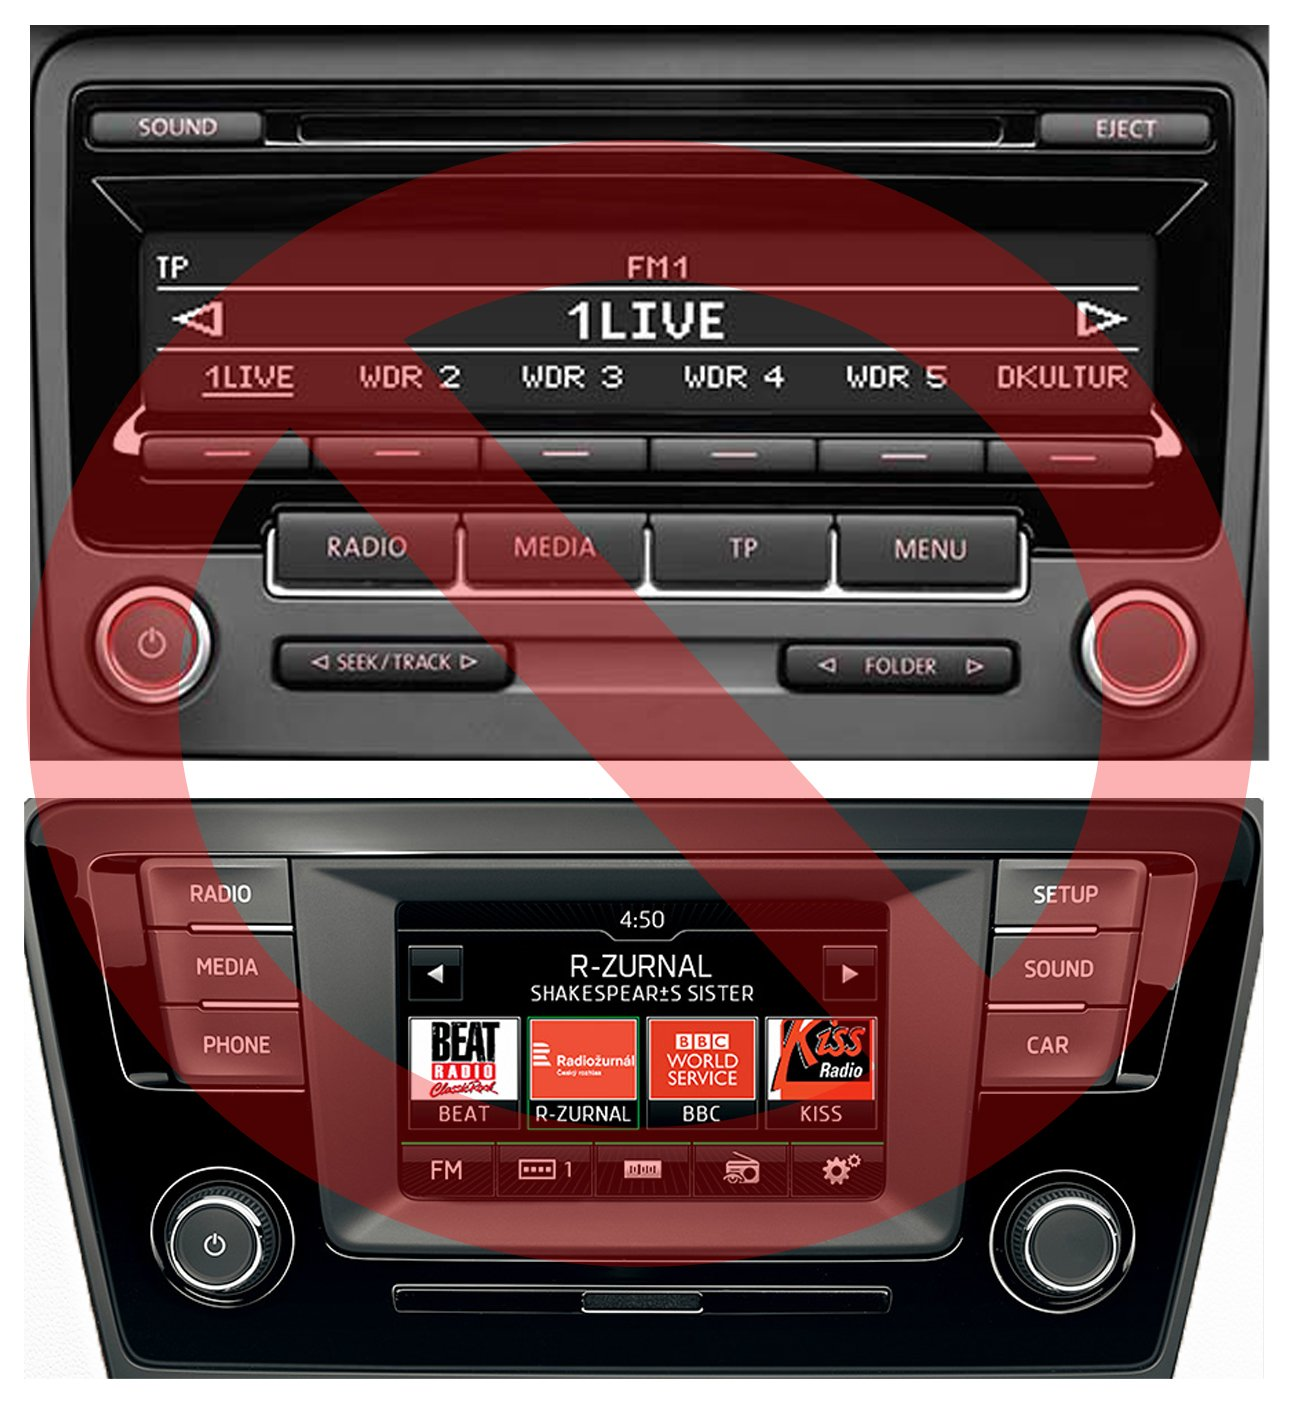 USB-SD-AUX-MP3-Adapter-Bluetooth-Freisprechanlage-fr-VW-RCD-210-RNS-310-ab-Juli-2010-Skoda-Beat-Cruise-Swing-ab-Juli-2010